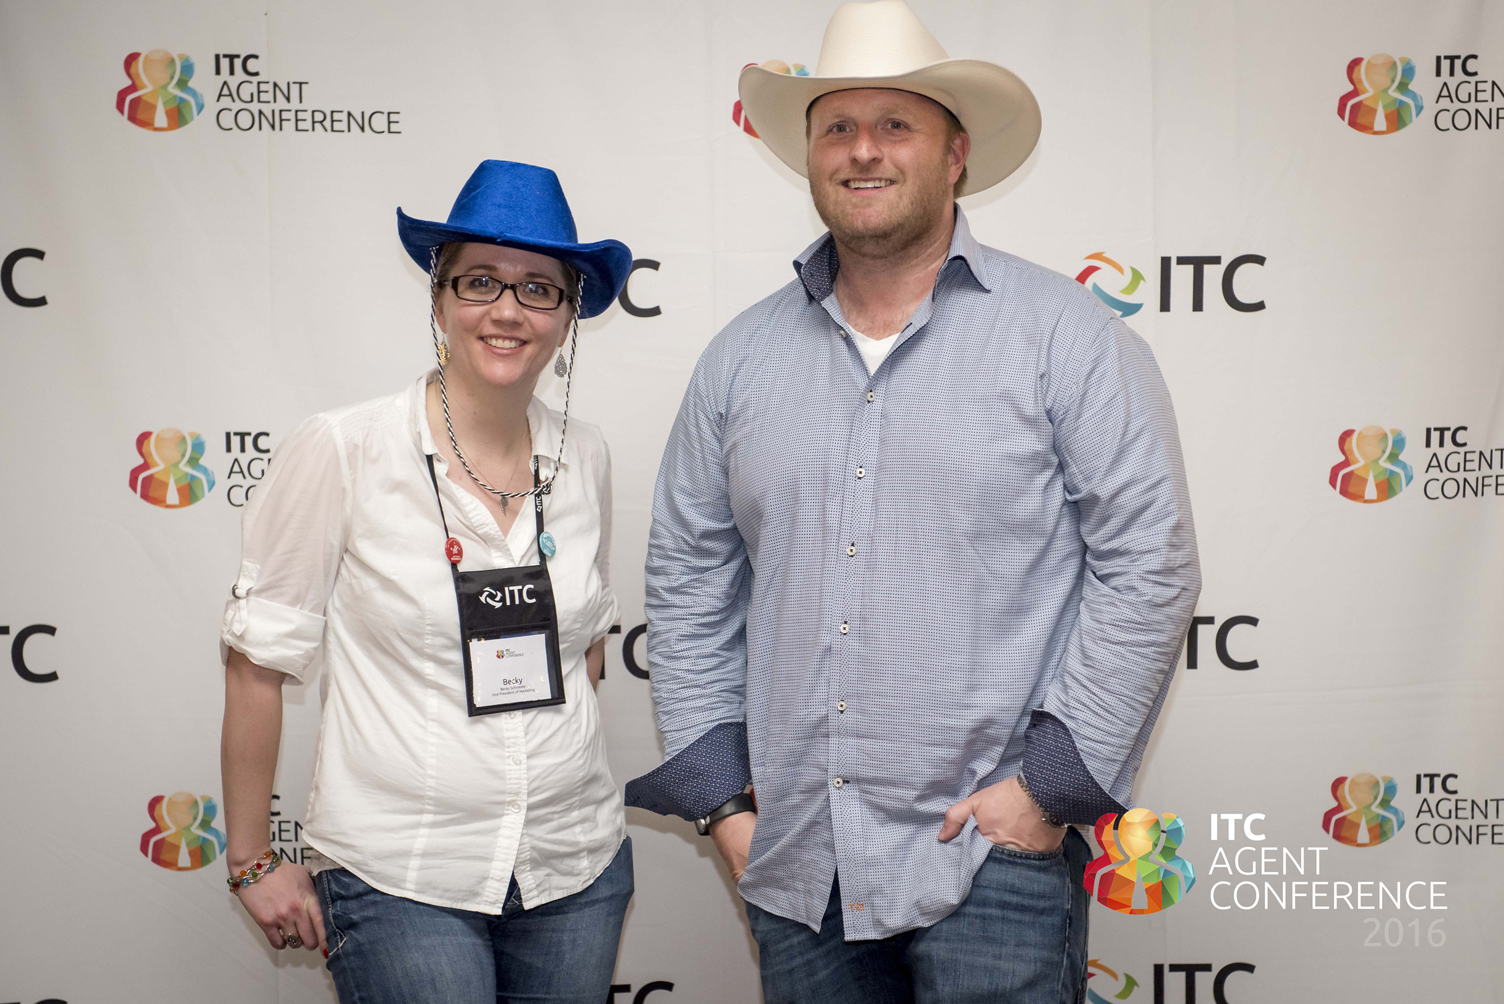 Becky Schroeder and Laird Rixford at ITC Agent Conference 2016